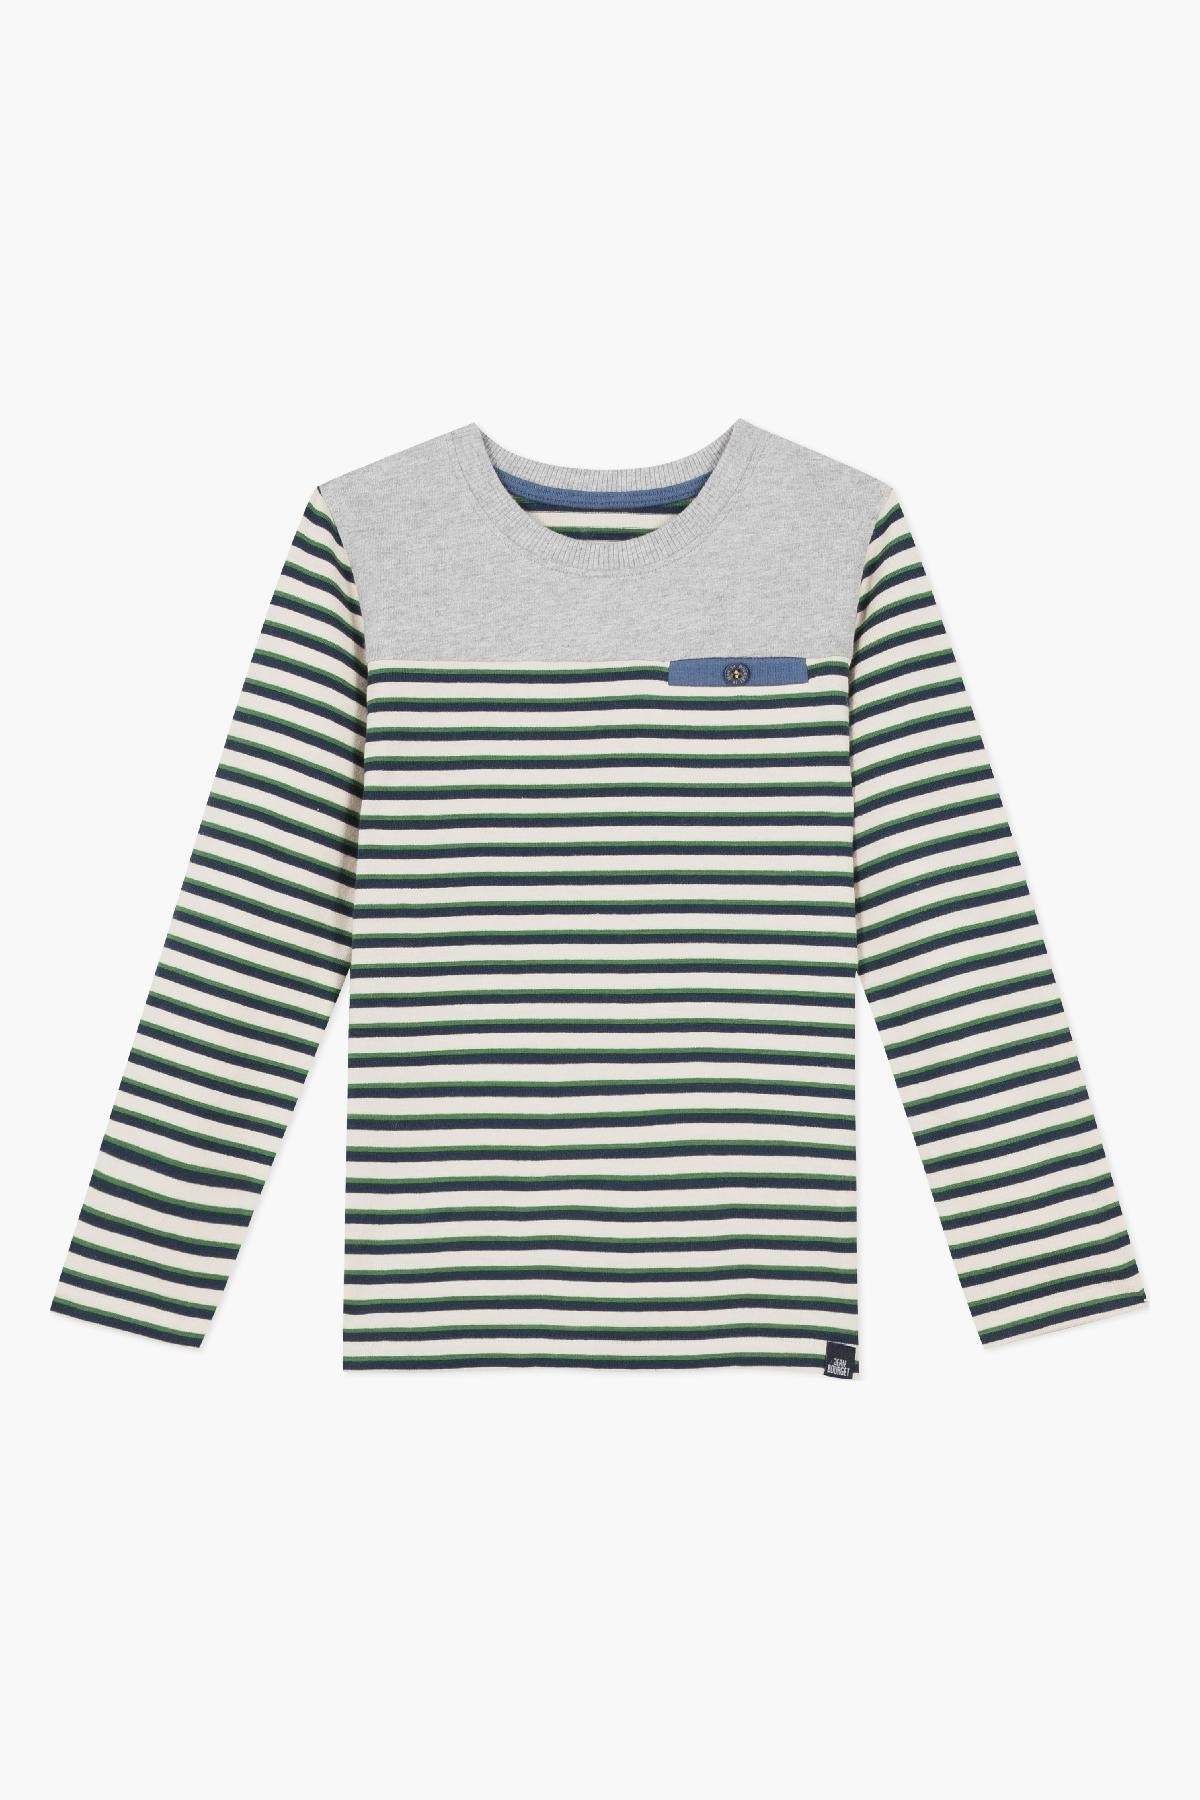 Jean Bourget Retro Gaming Striped Tee